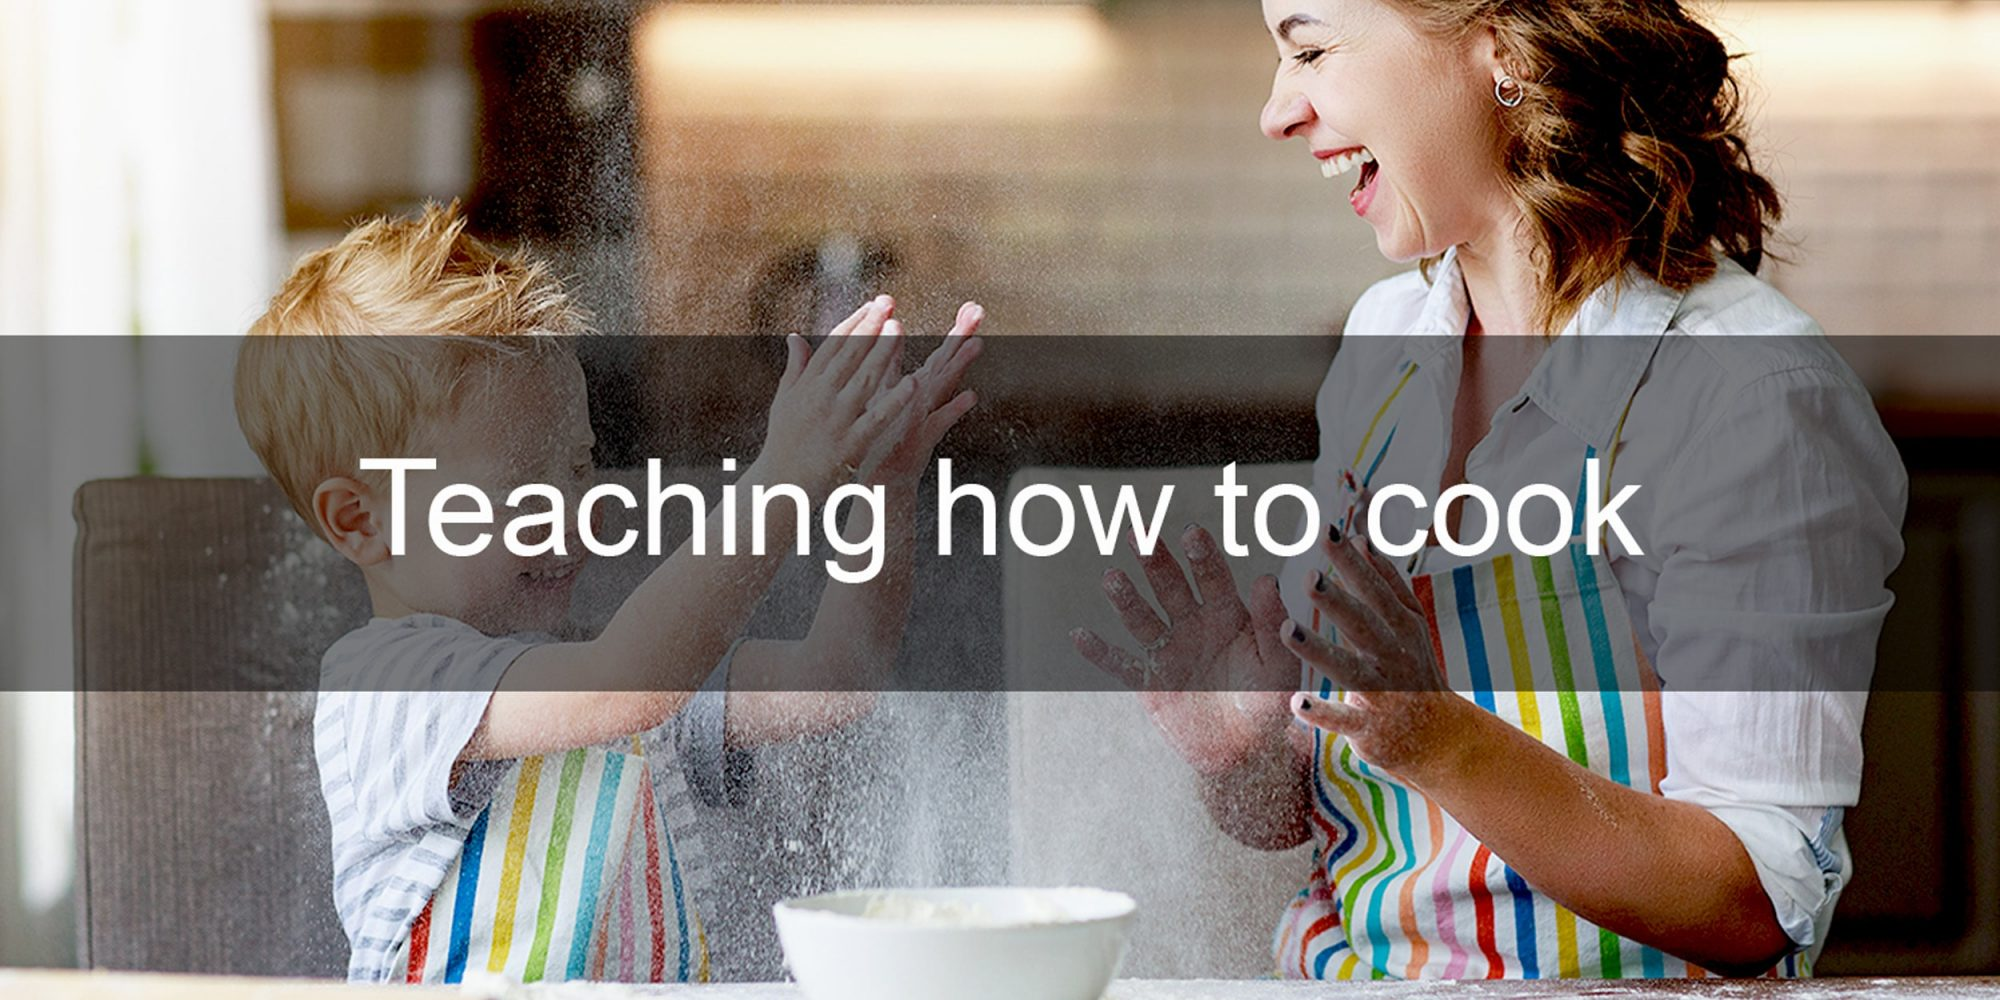 Teaching how to cook